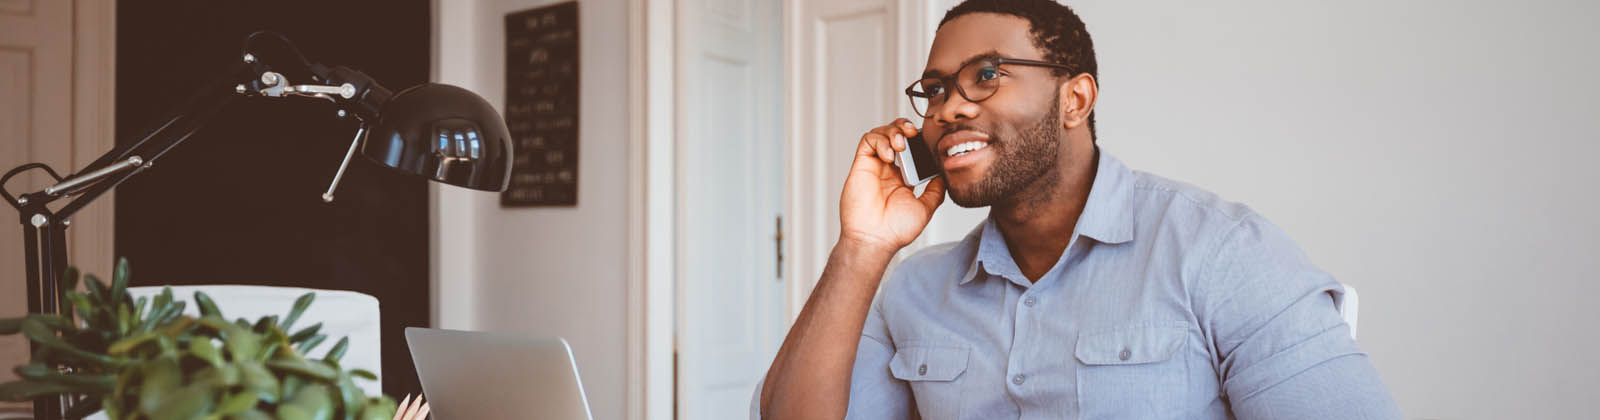 man on phone in office setting